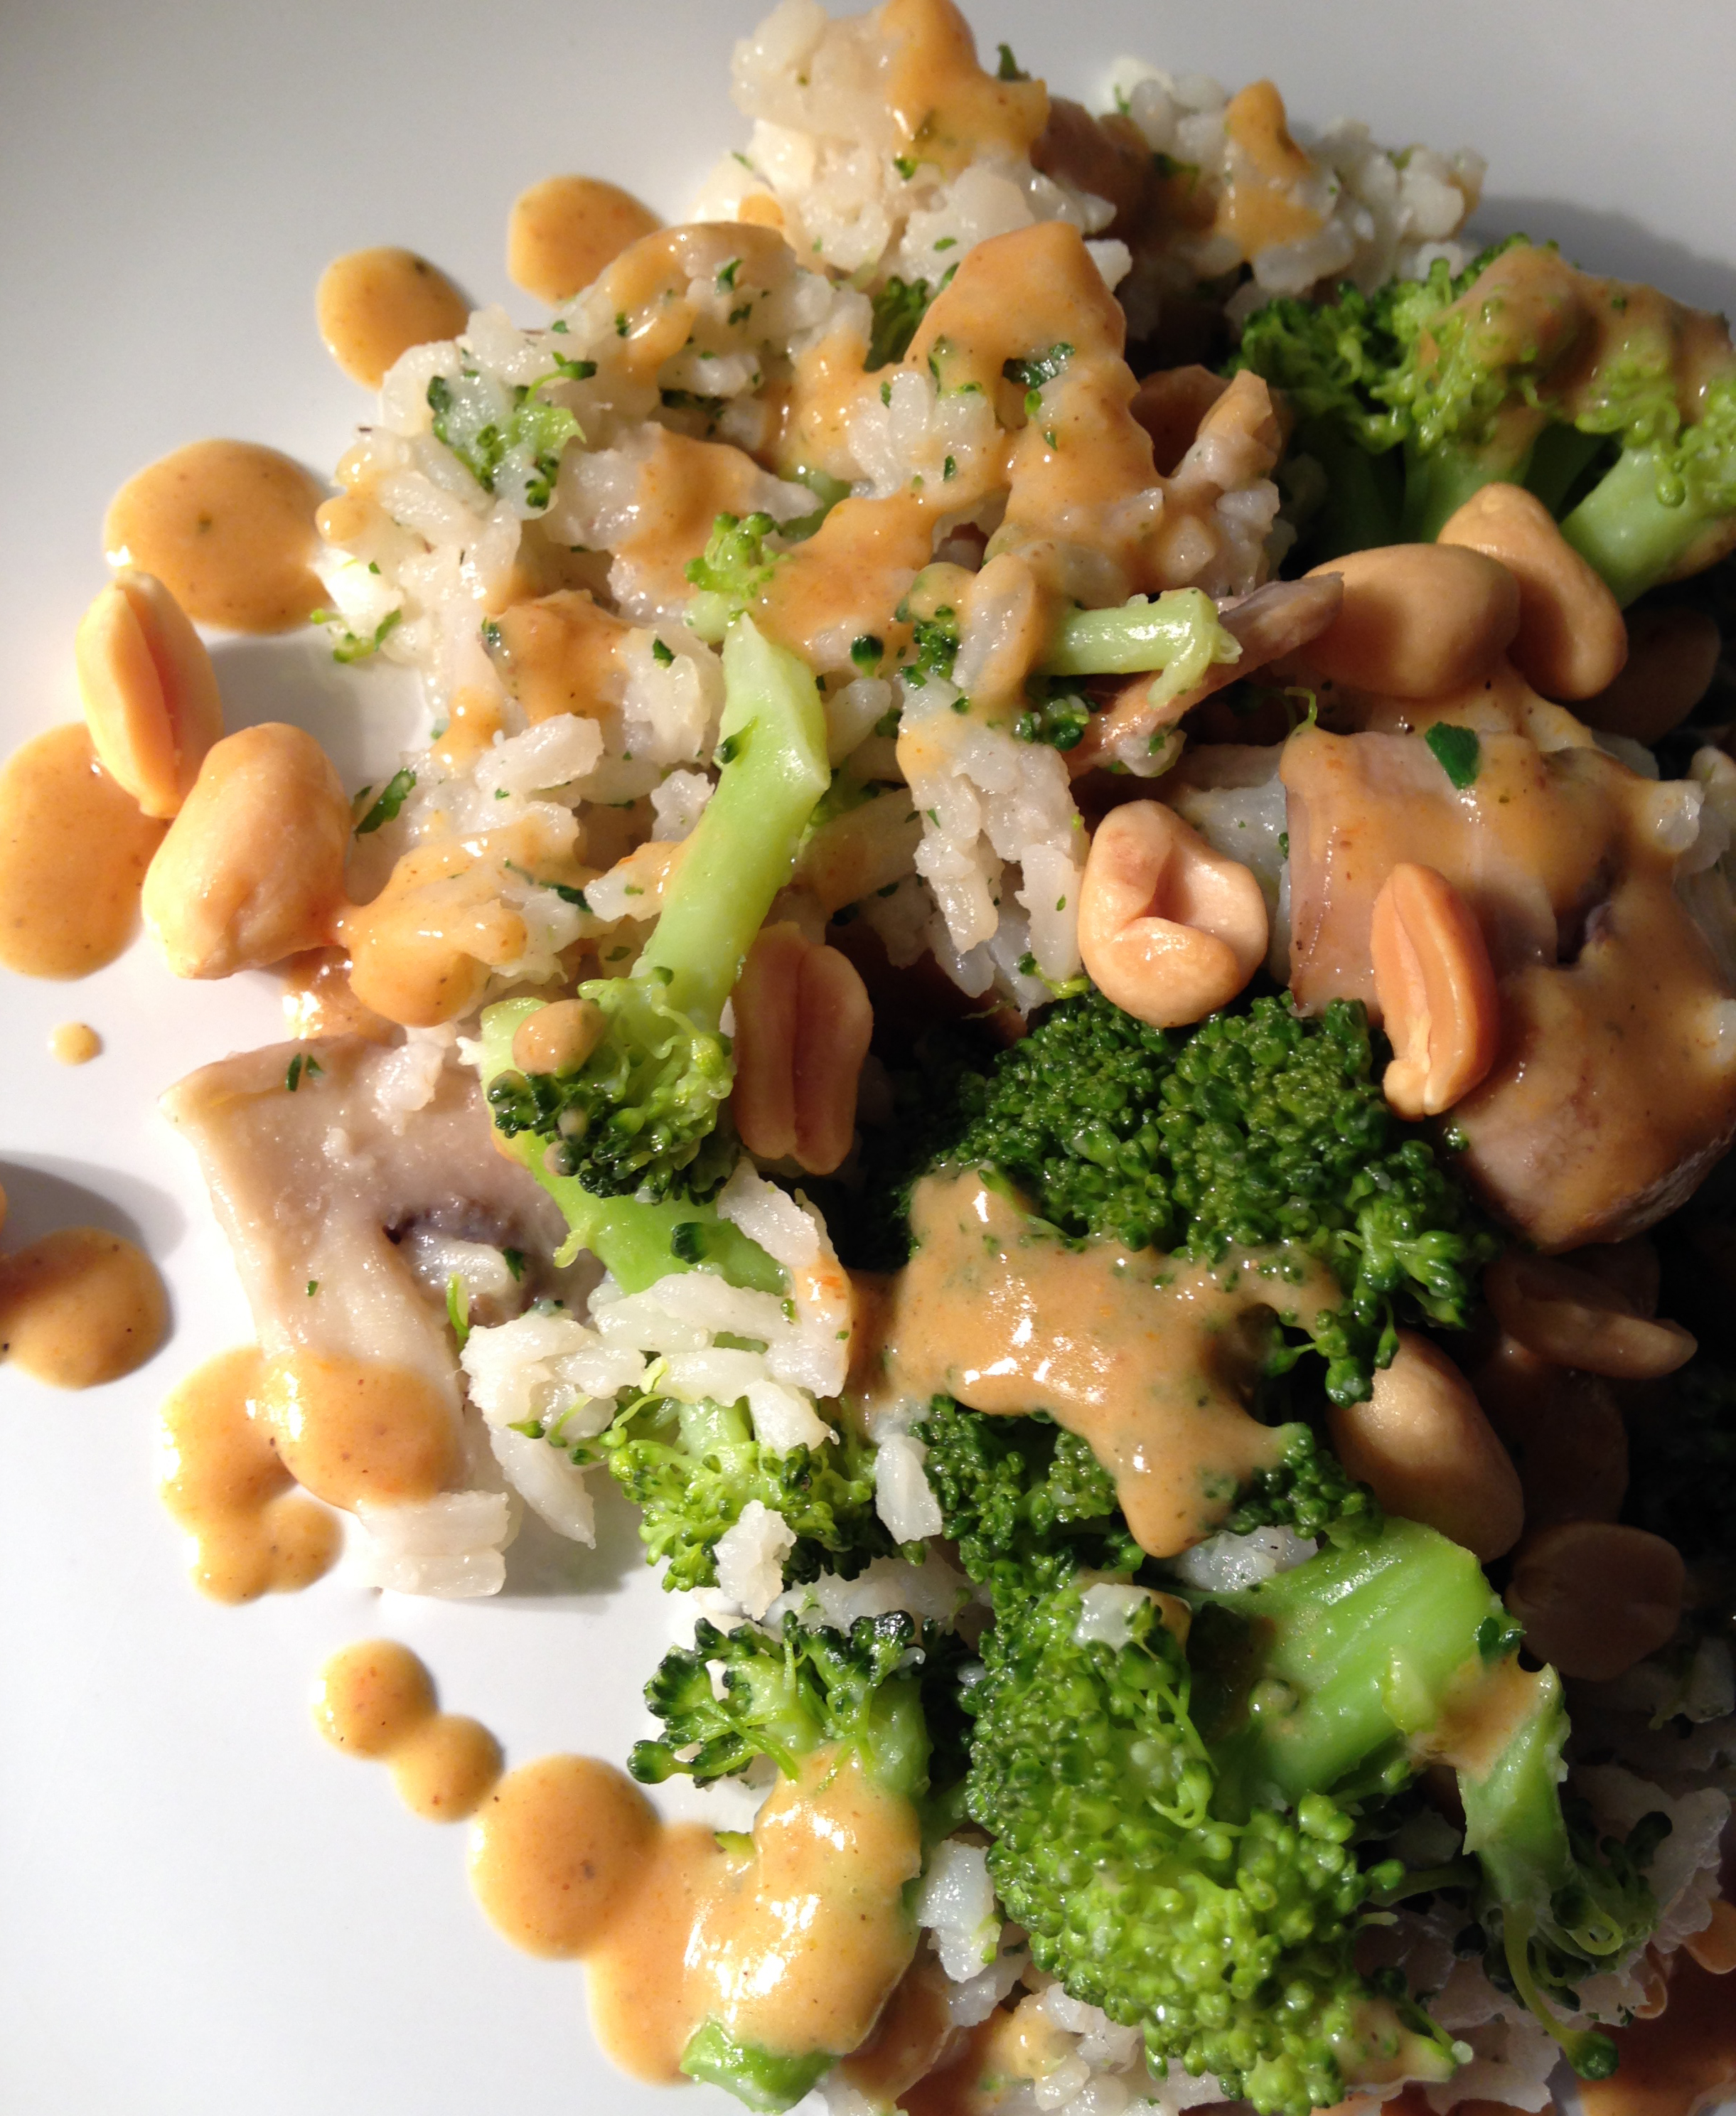 champignon-brokkoli-reispfanne mit erdnusssauce und knackigen erdnüssen | mushroom-broccoli-rice-pan with peanut sauce and crunchy peanuts | vegan | vegetarisch | vegetarian